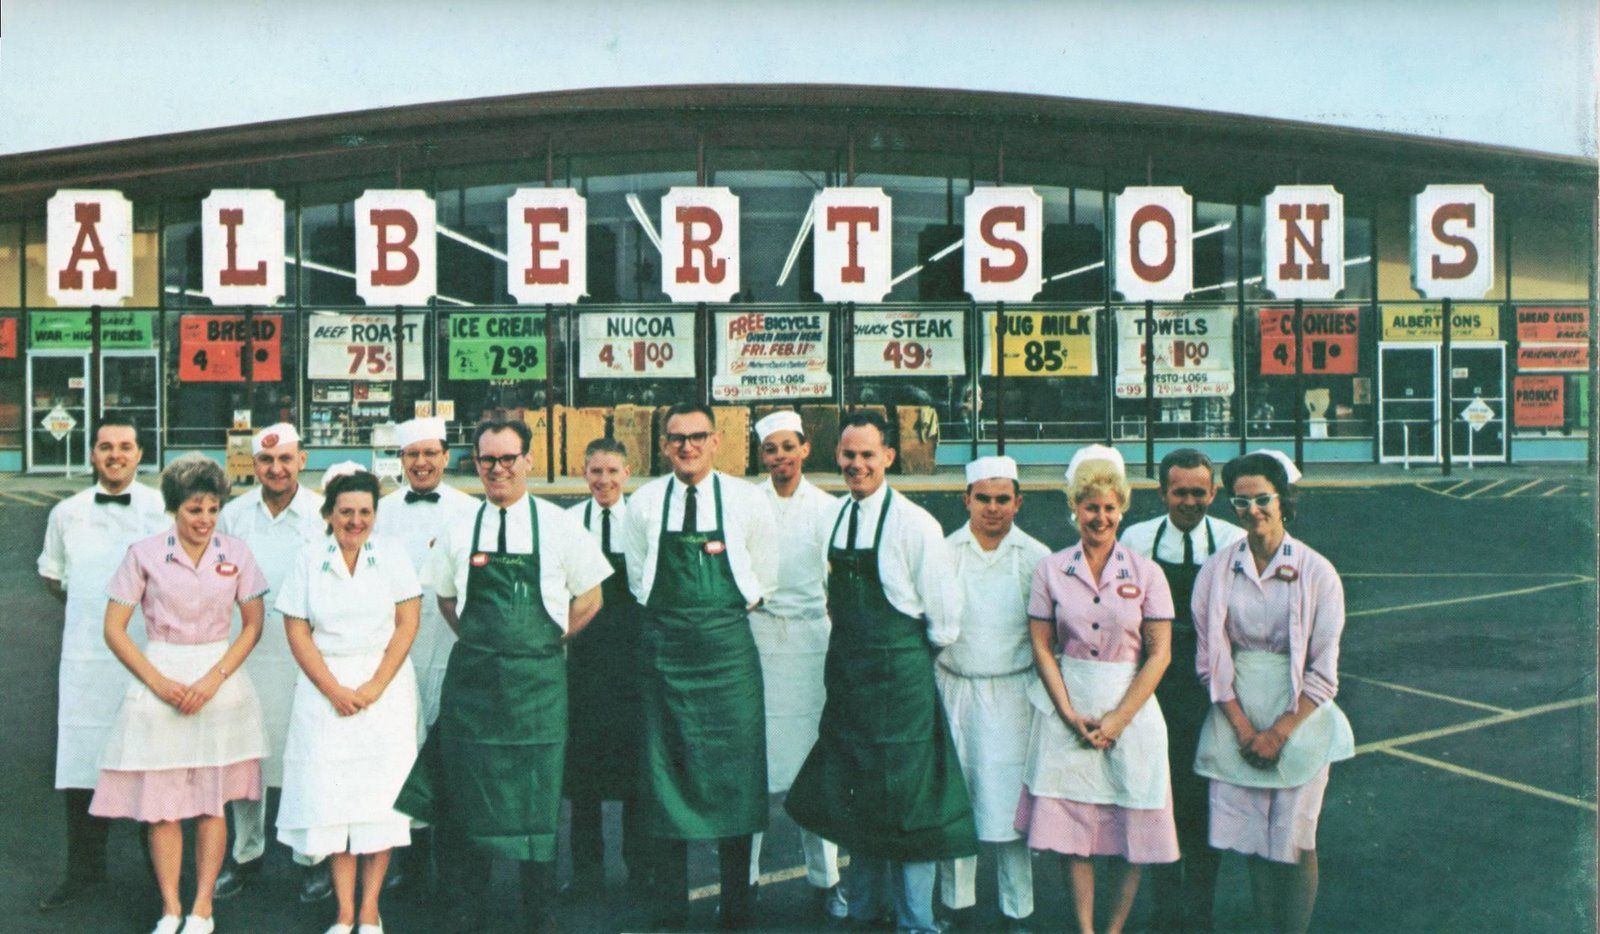 Albertsons - location unknown - 1966